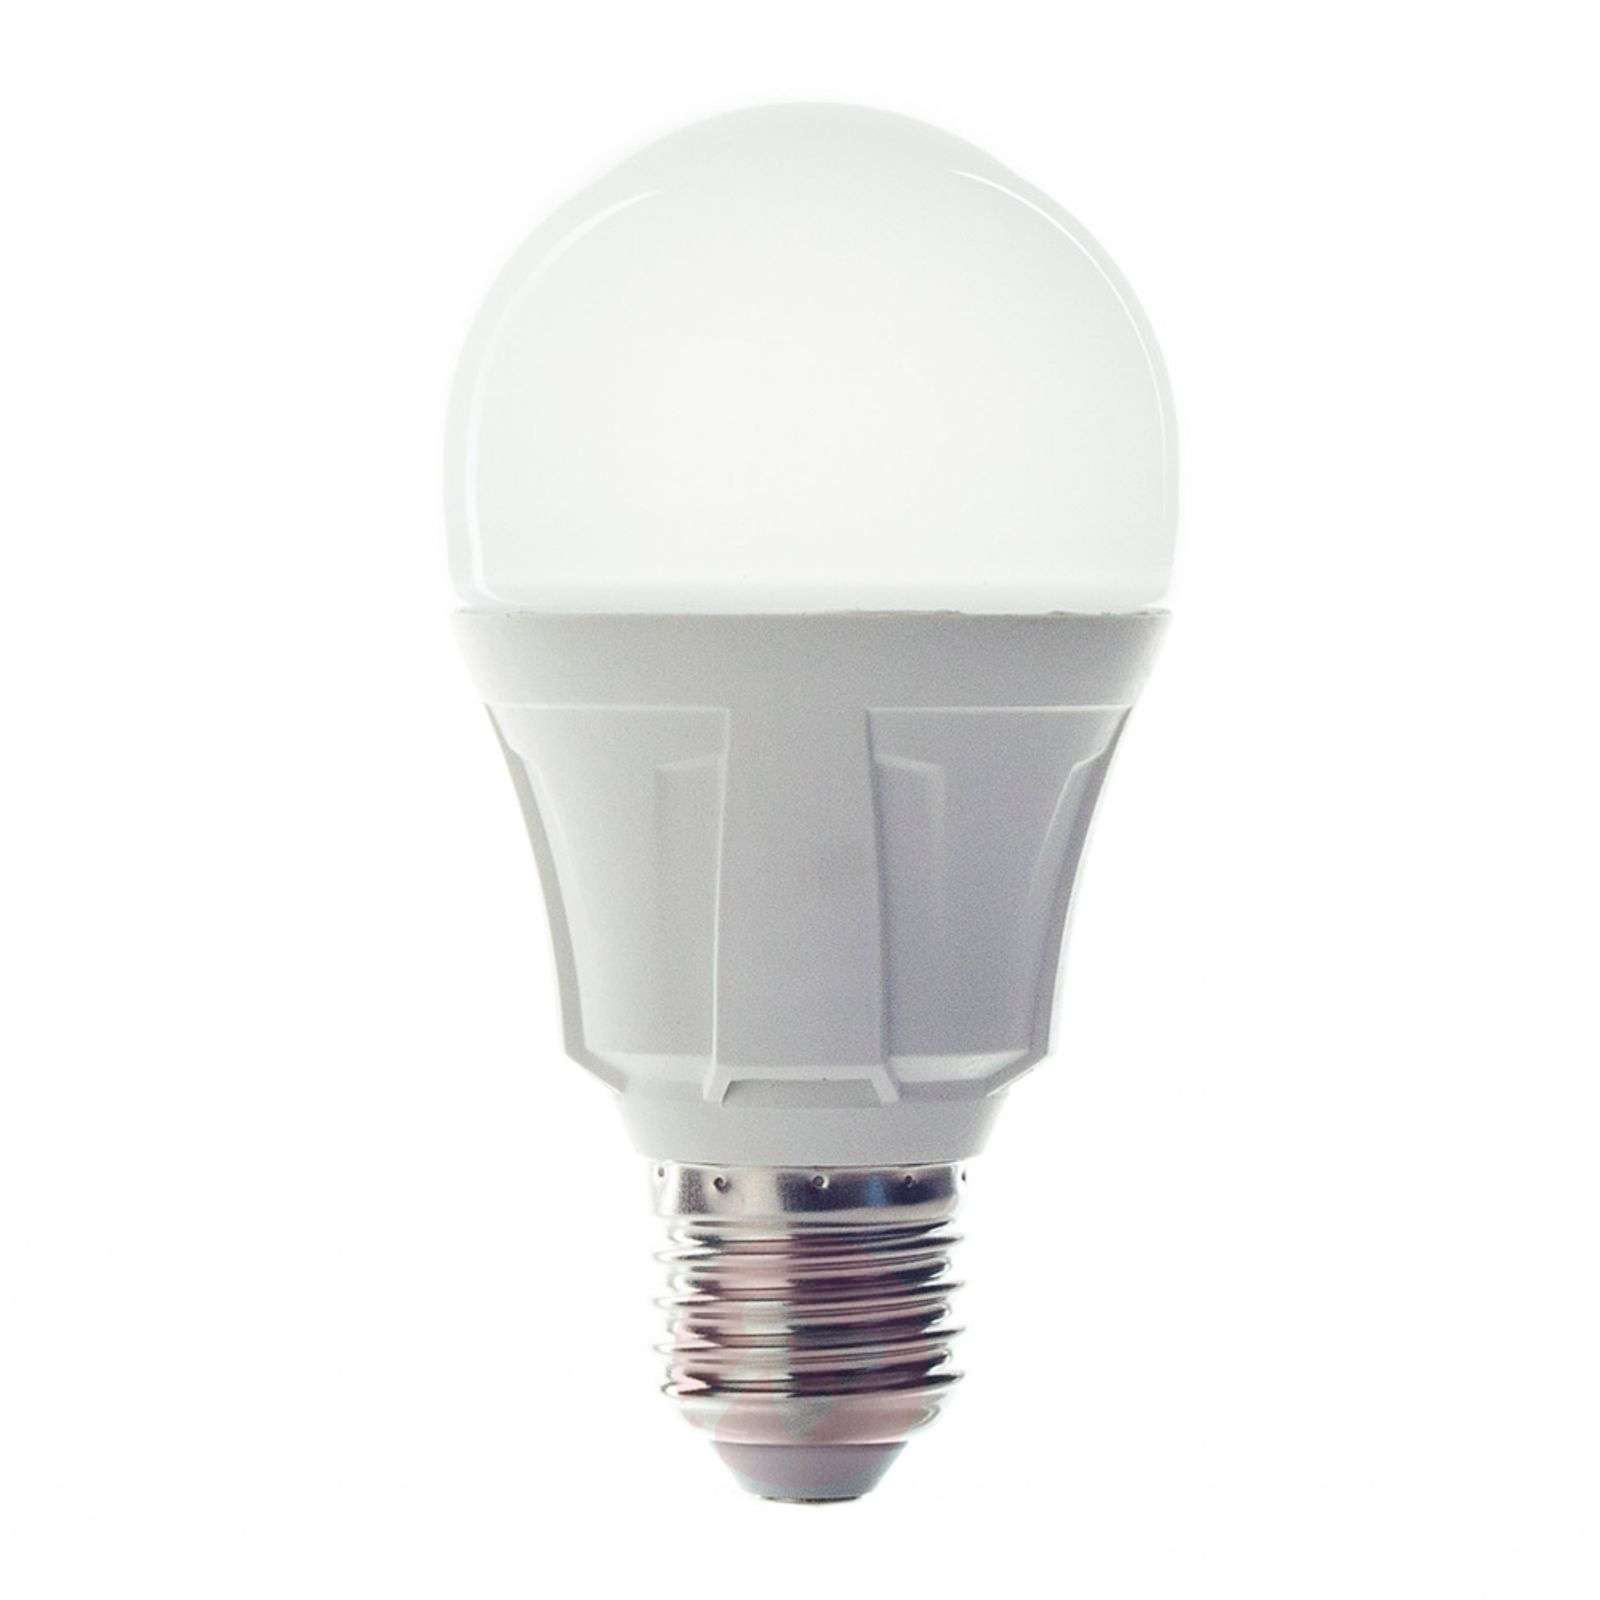 Ampoule LED E27 11W 830 blanc chaud-9993002-02